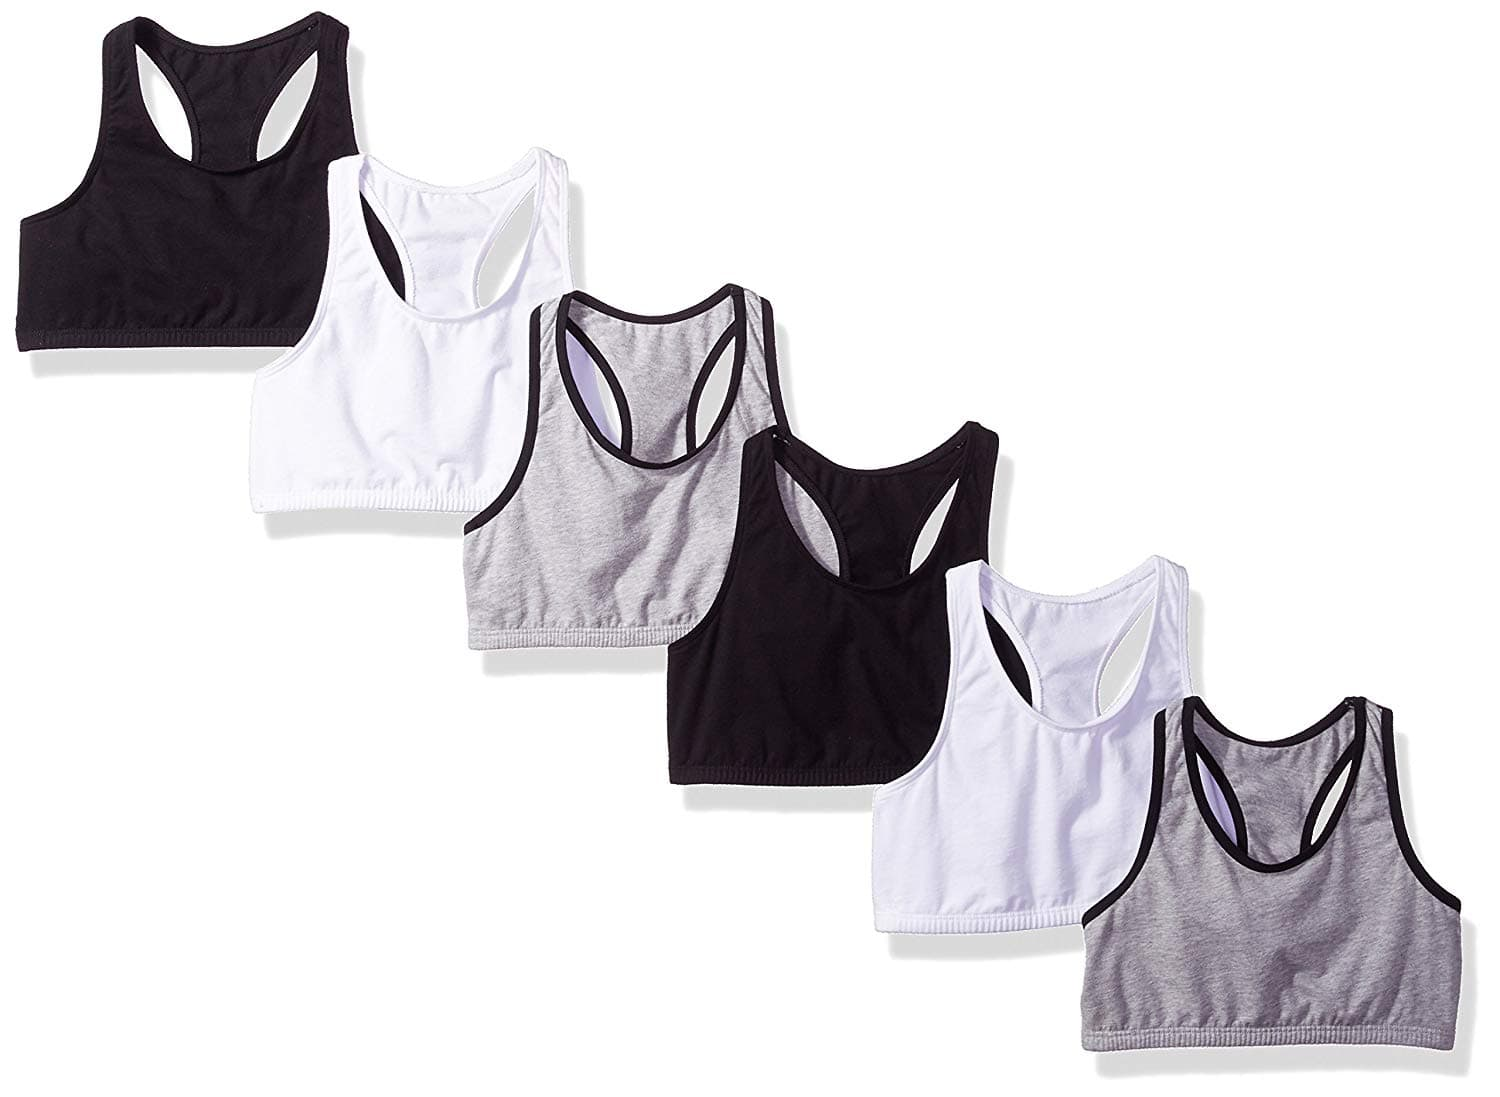 6-Pack Fruit of the Loom Big Girls' Cotton Built-Up Sport Bra $9.98 - Amazon